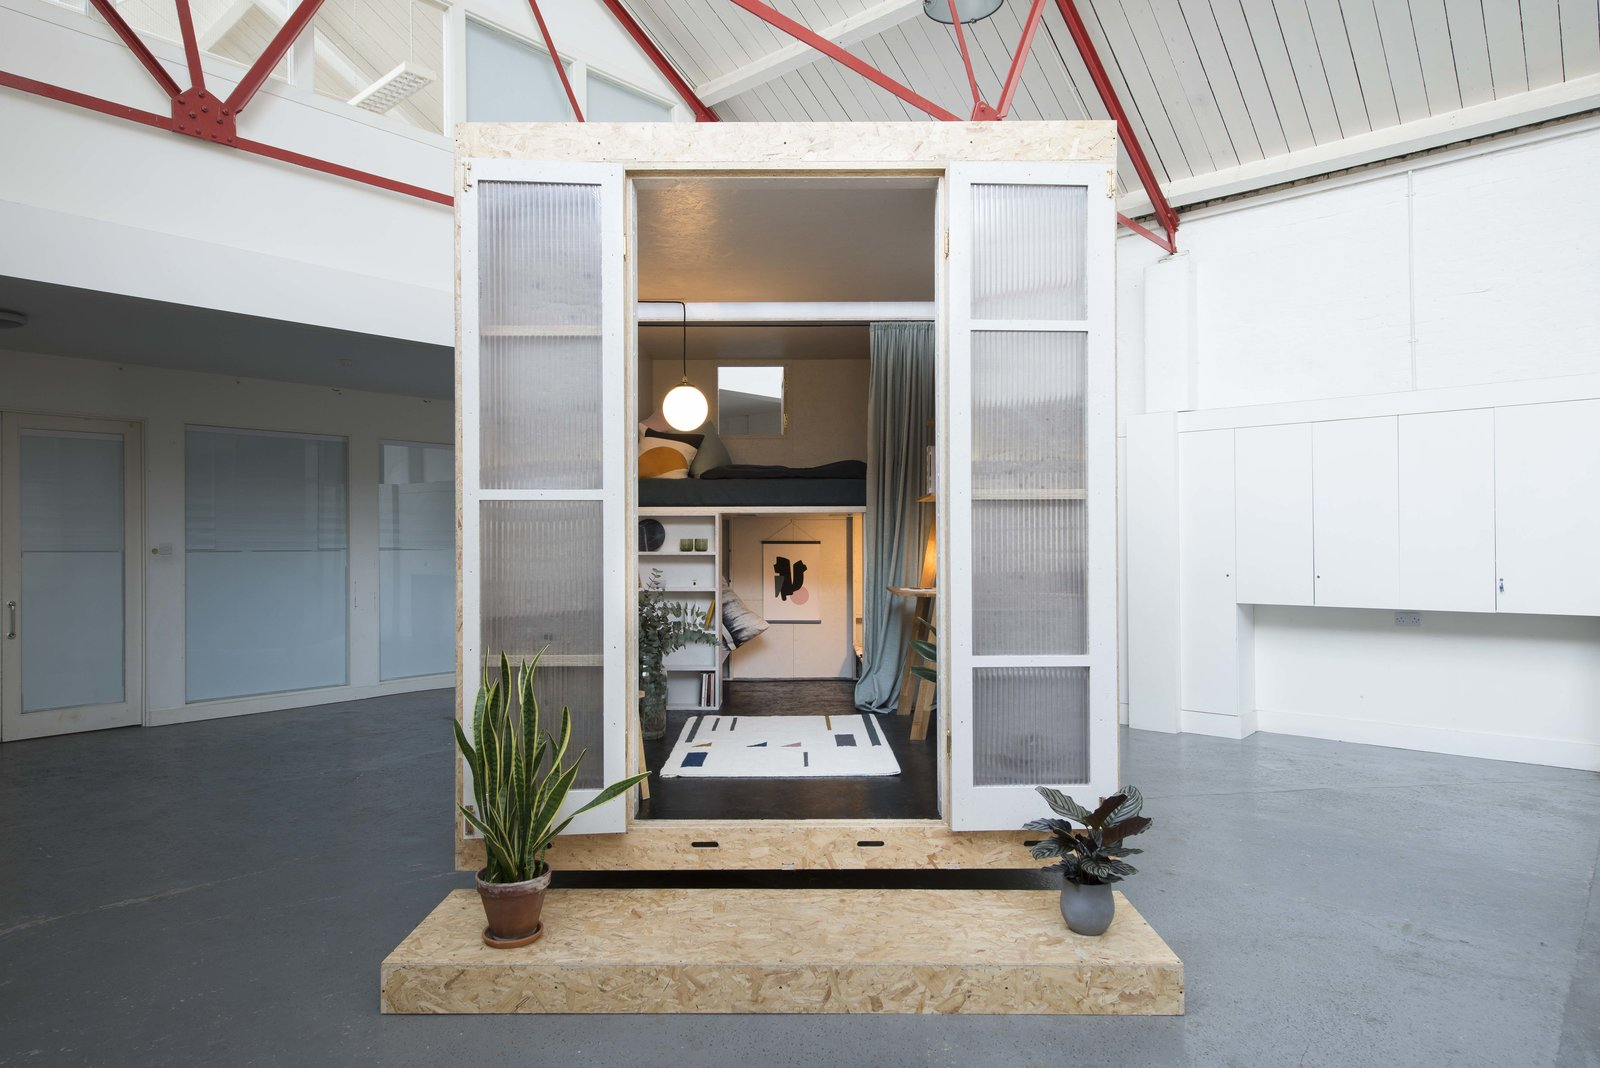 Exterior, Small Home Building Type, and Prefab Building Type The collaborative team of Studio Bark and Lowe Guardians describe the SHED concept as  Photo 7 of 10 in Dwell's Top 10 Prefabs of 2017 from A New Concept For Modular, Affordable Housing Is Coming to London's Vacant Buildings